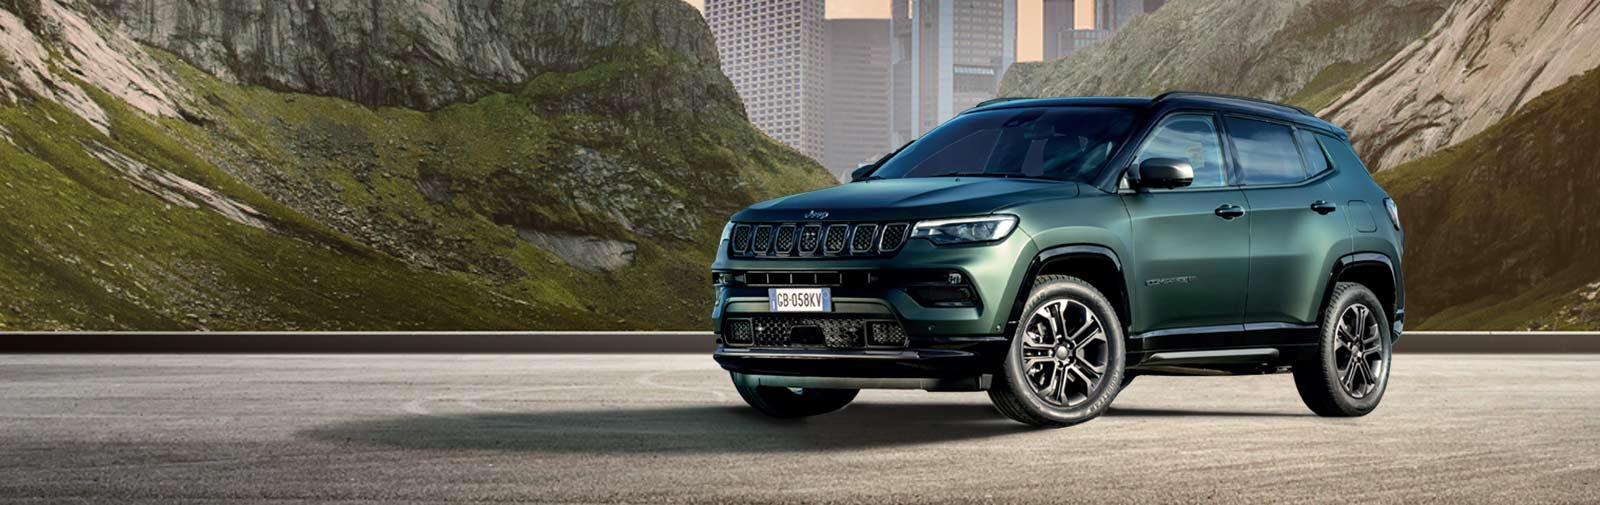 Offre Jeep Compass